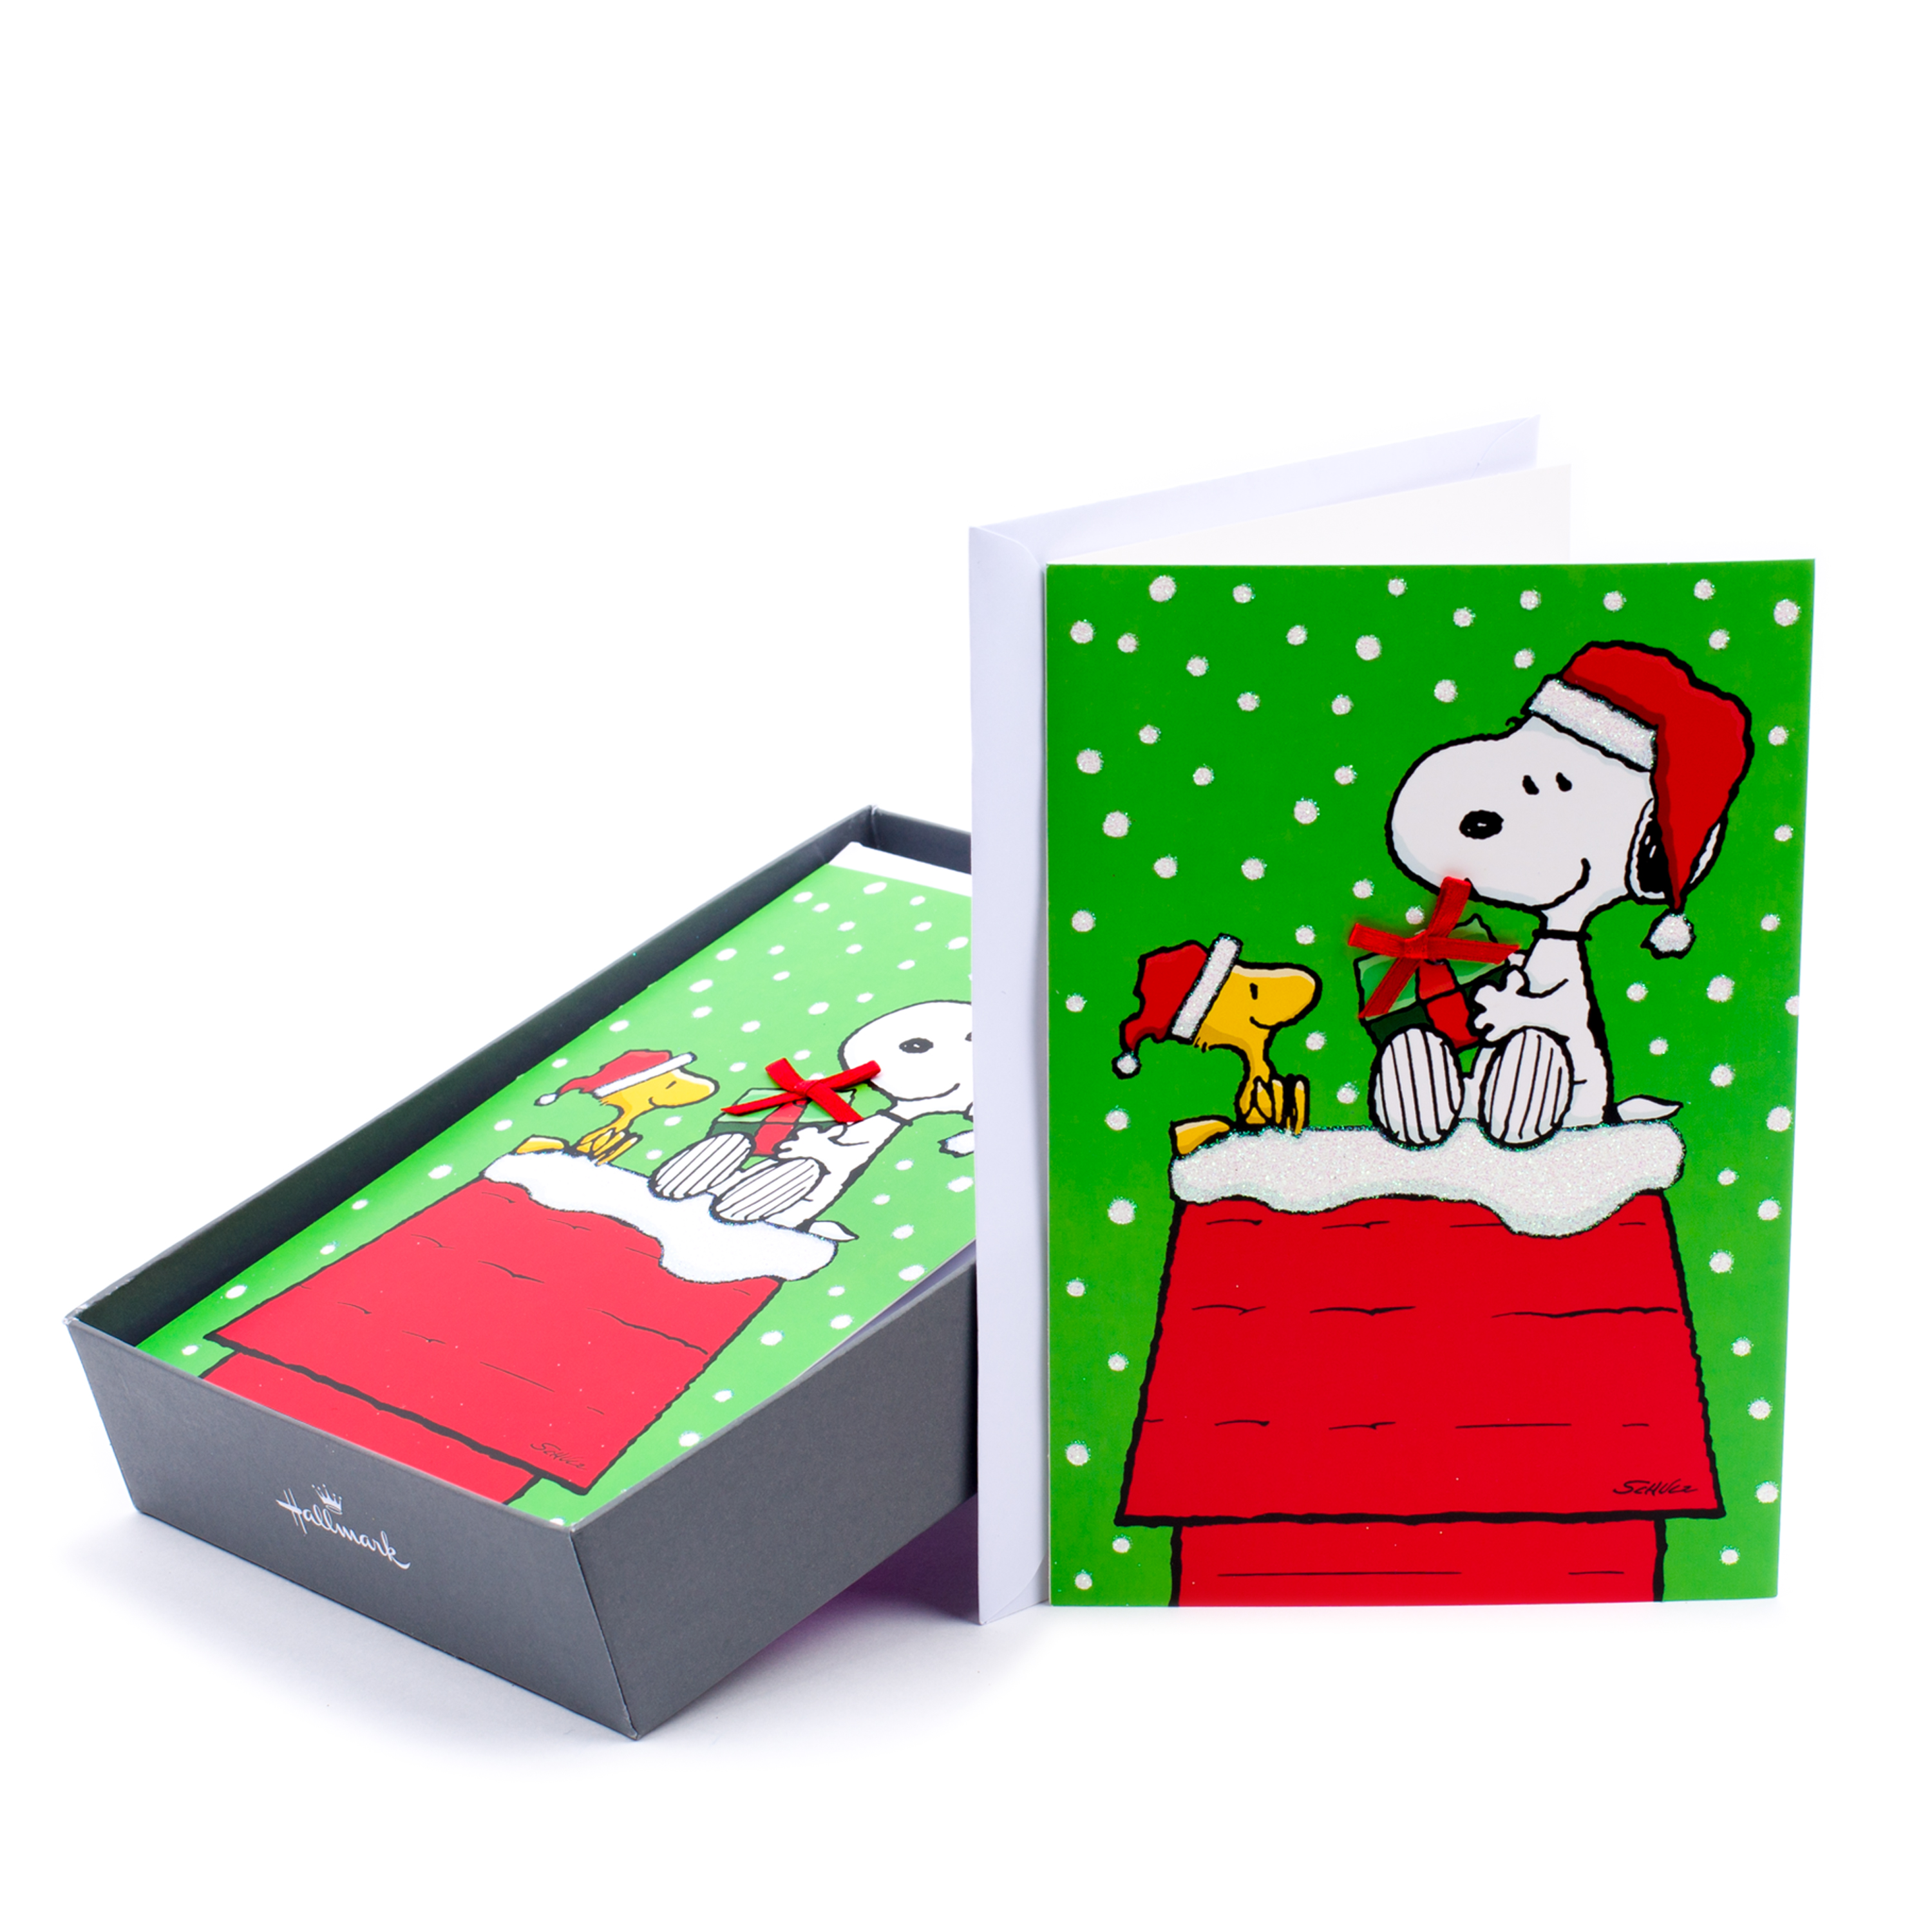 Hallmark Peanuts Christmas Boxed Cards, Snoopy (16 Cards and 17 Envelopes)